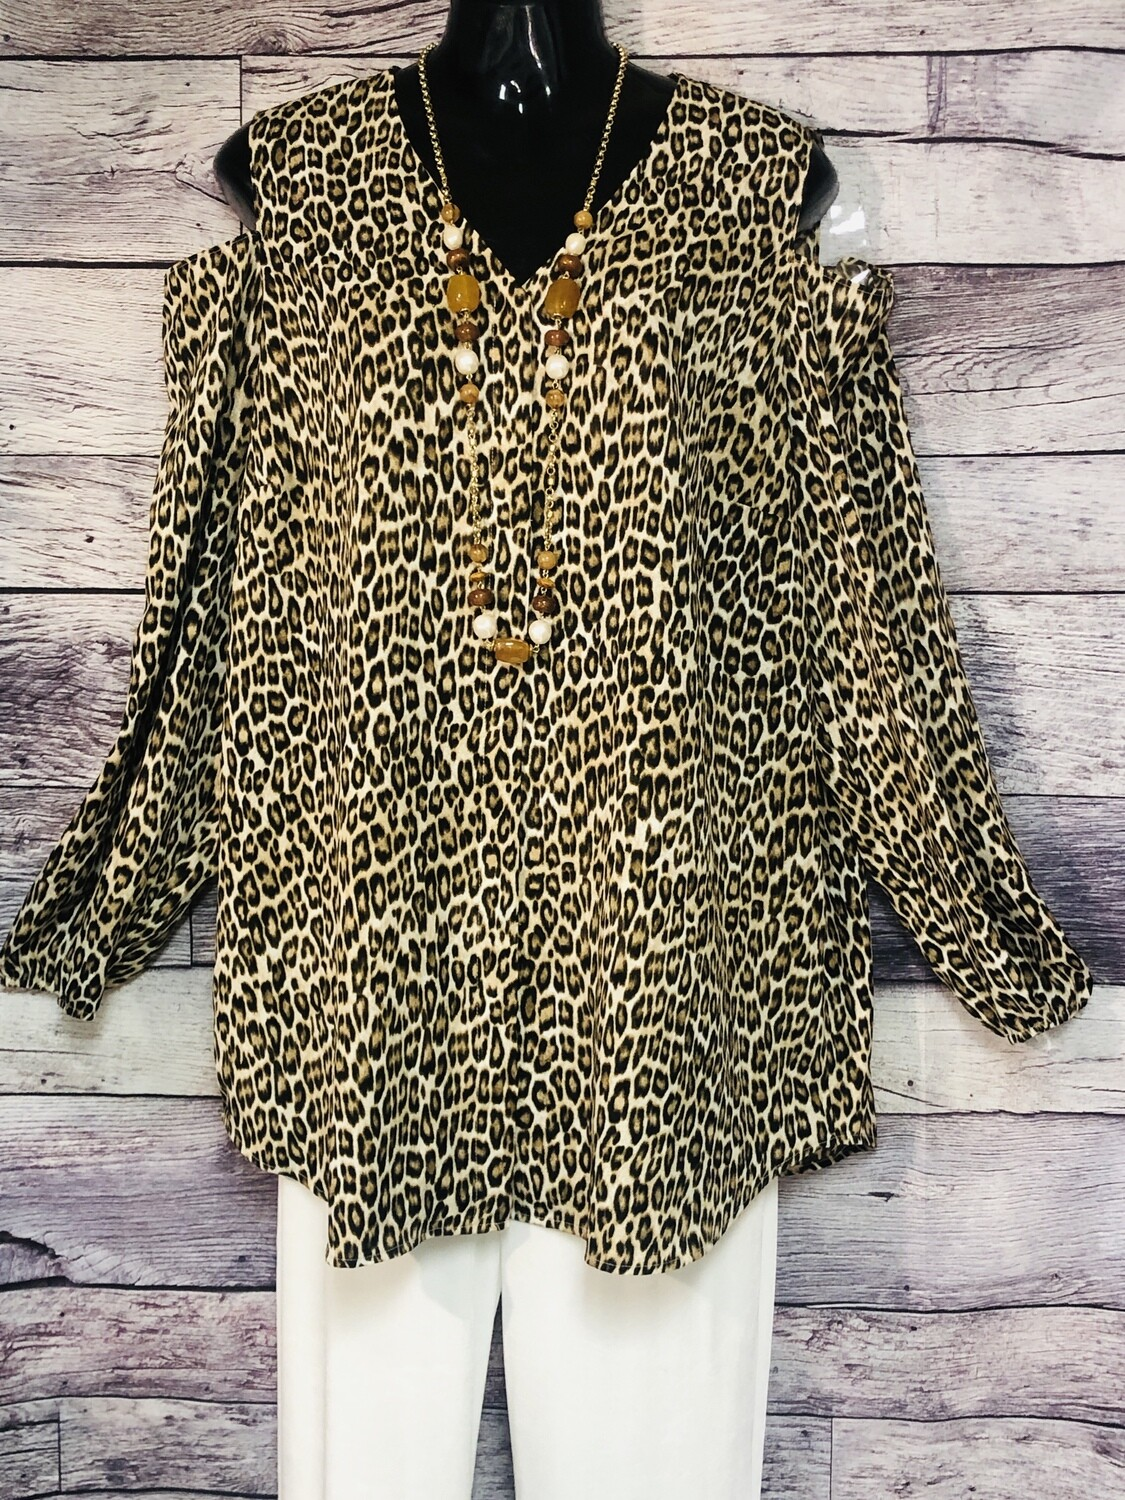 CHICOS Leopard Cut-Out Shoulder Blouse size 3